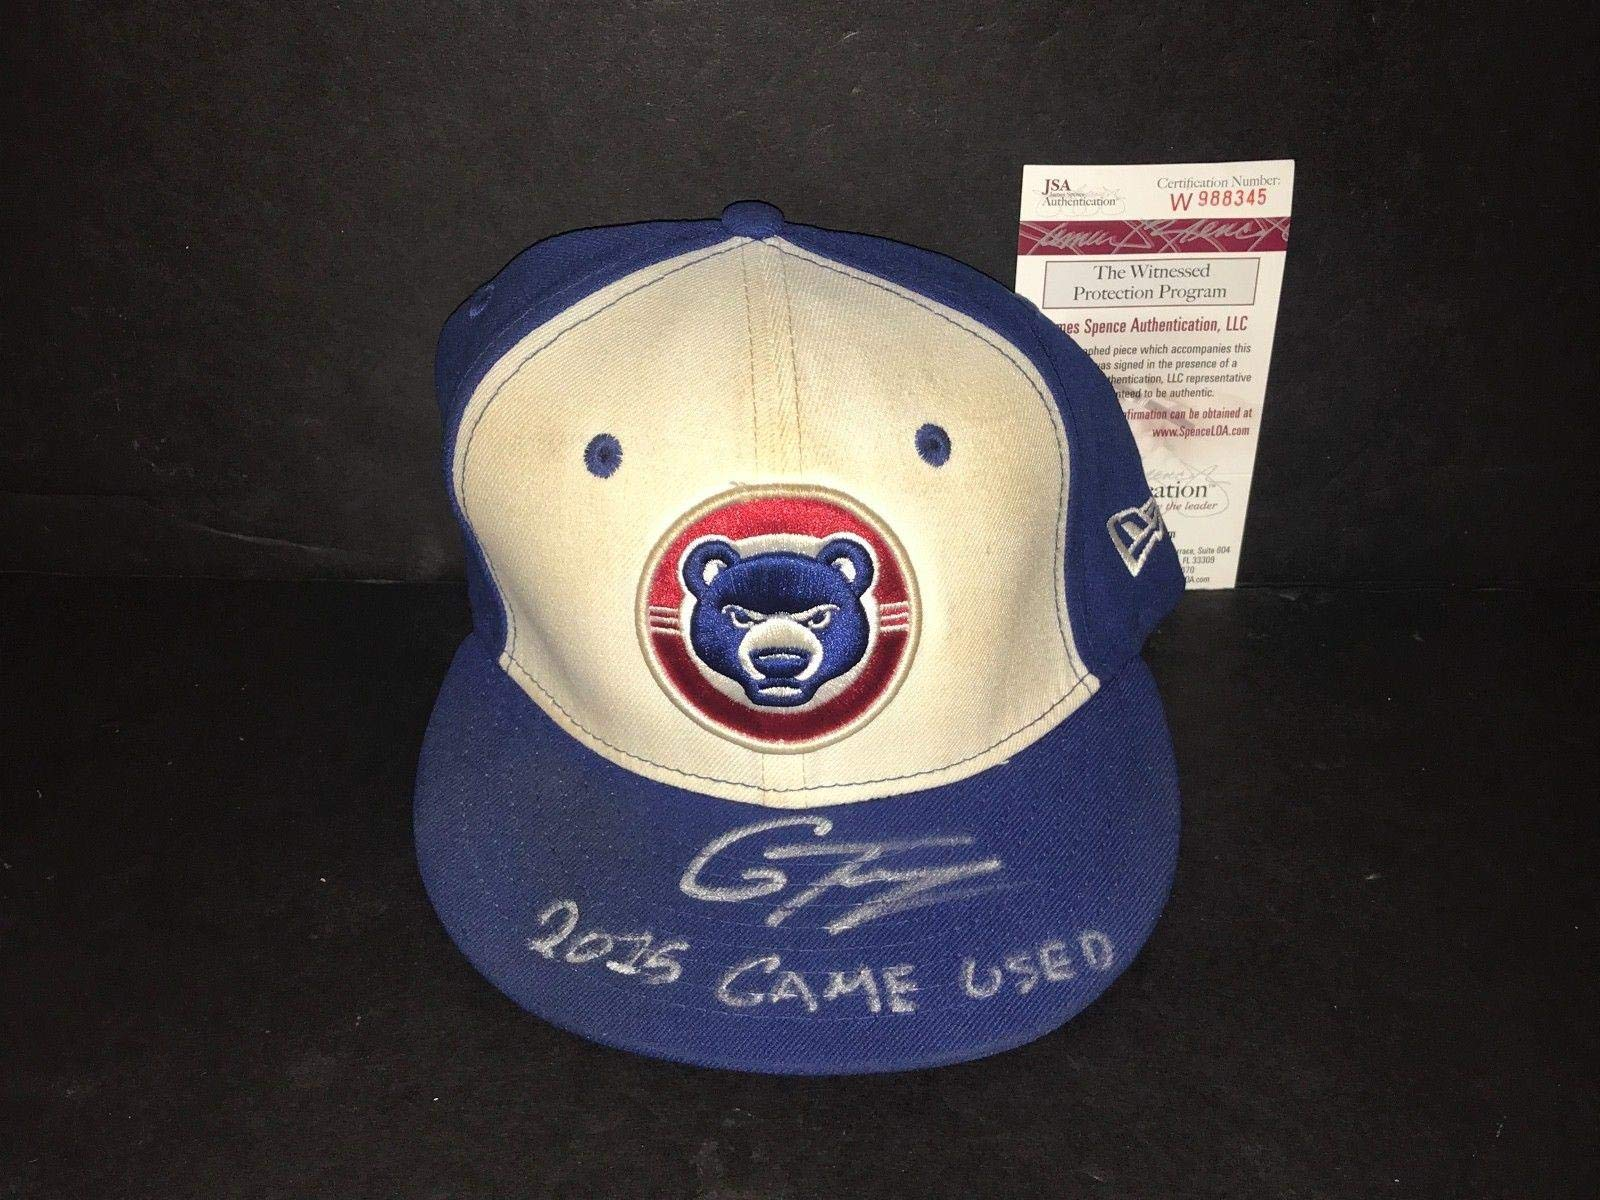 Gleyber Torres Yankees Cubs Signed 2015 Game Used Hat CAP WITNESS COA JSA Certified Game Used MLB Hats